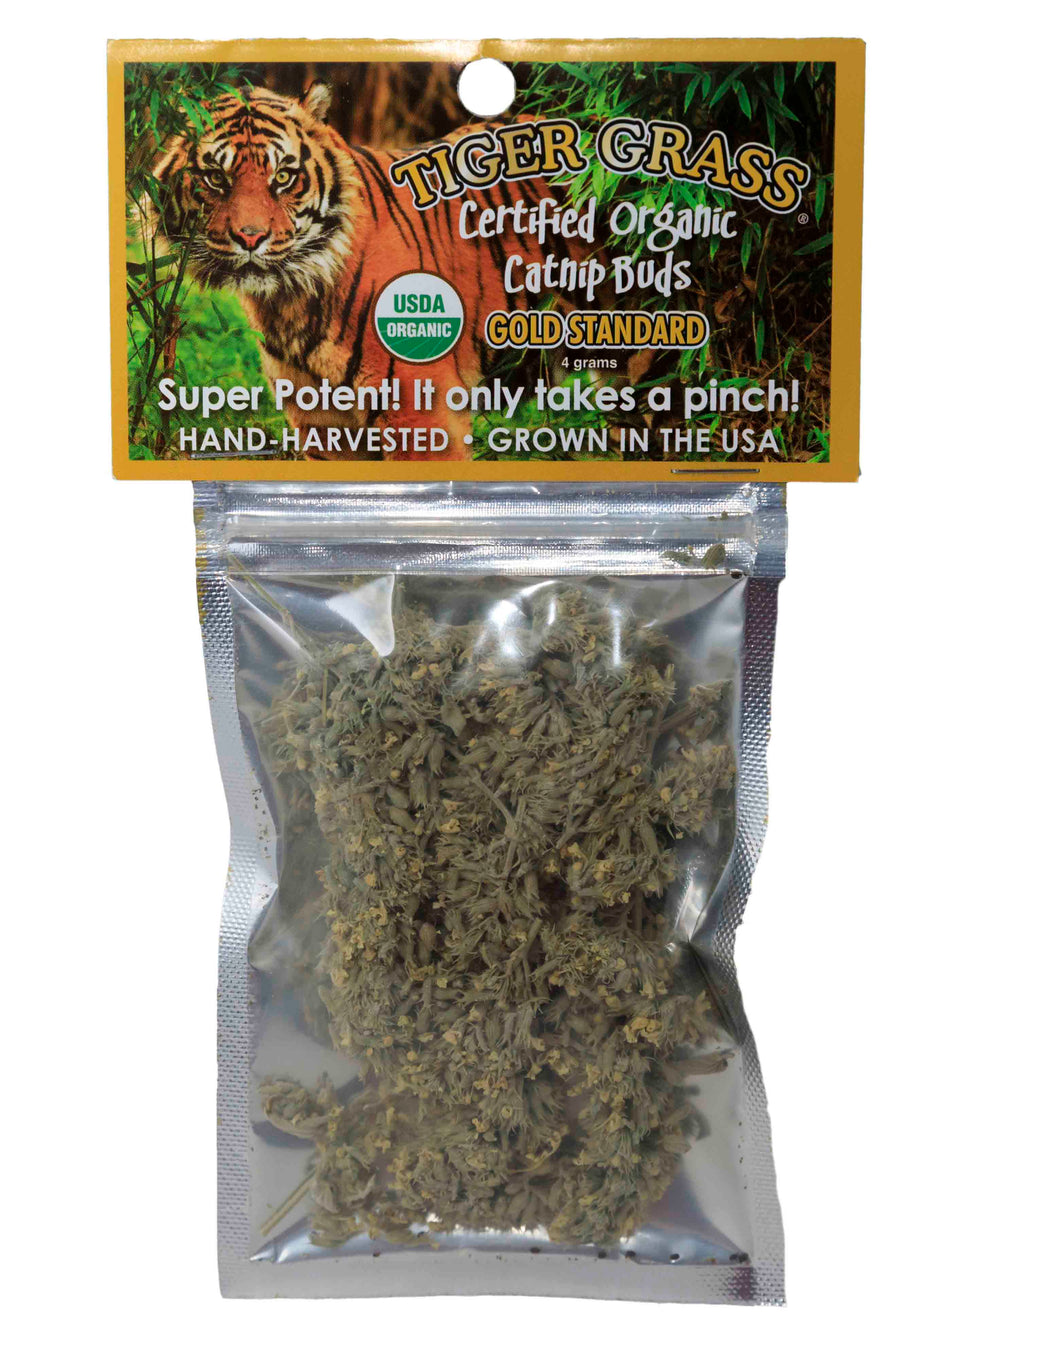 Cat Nip - Tiger Grass Certified Organic Bud Bag